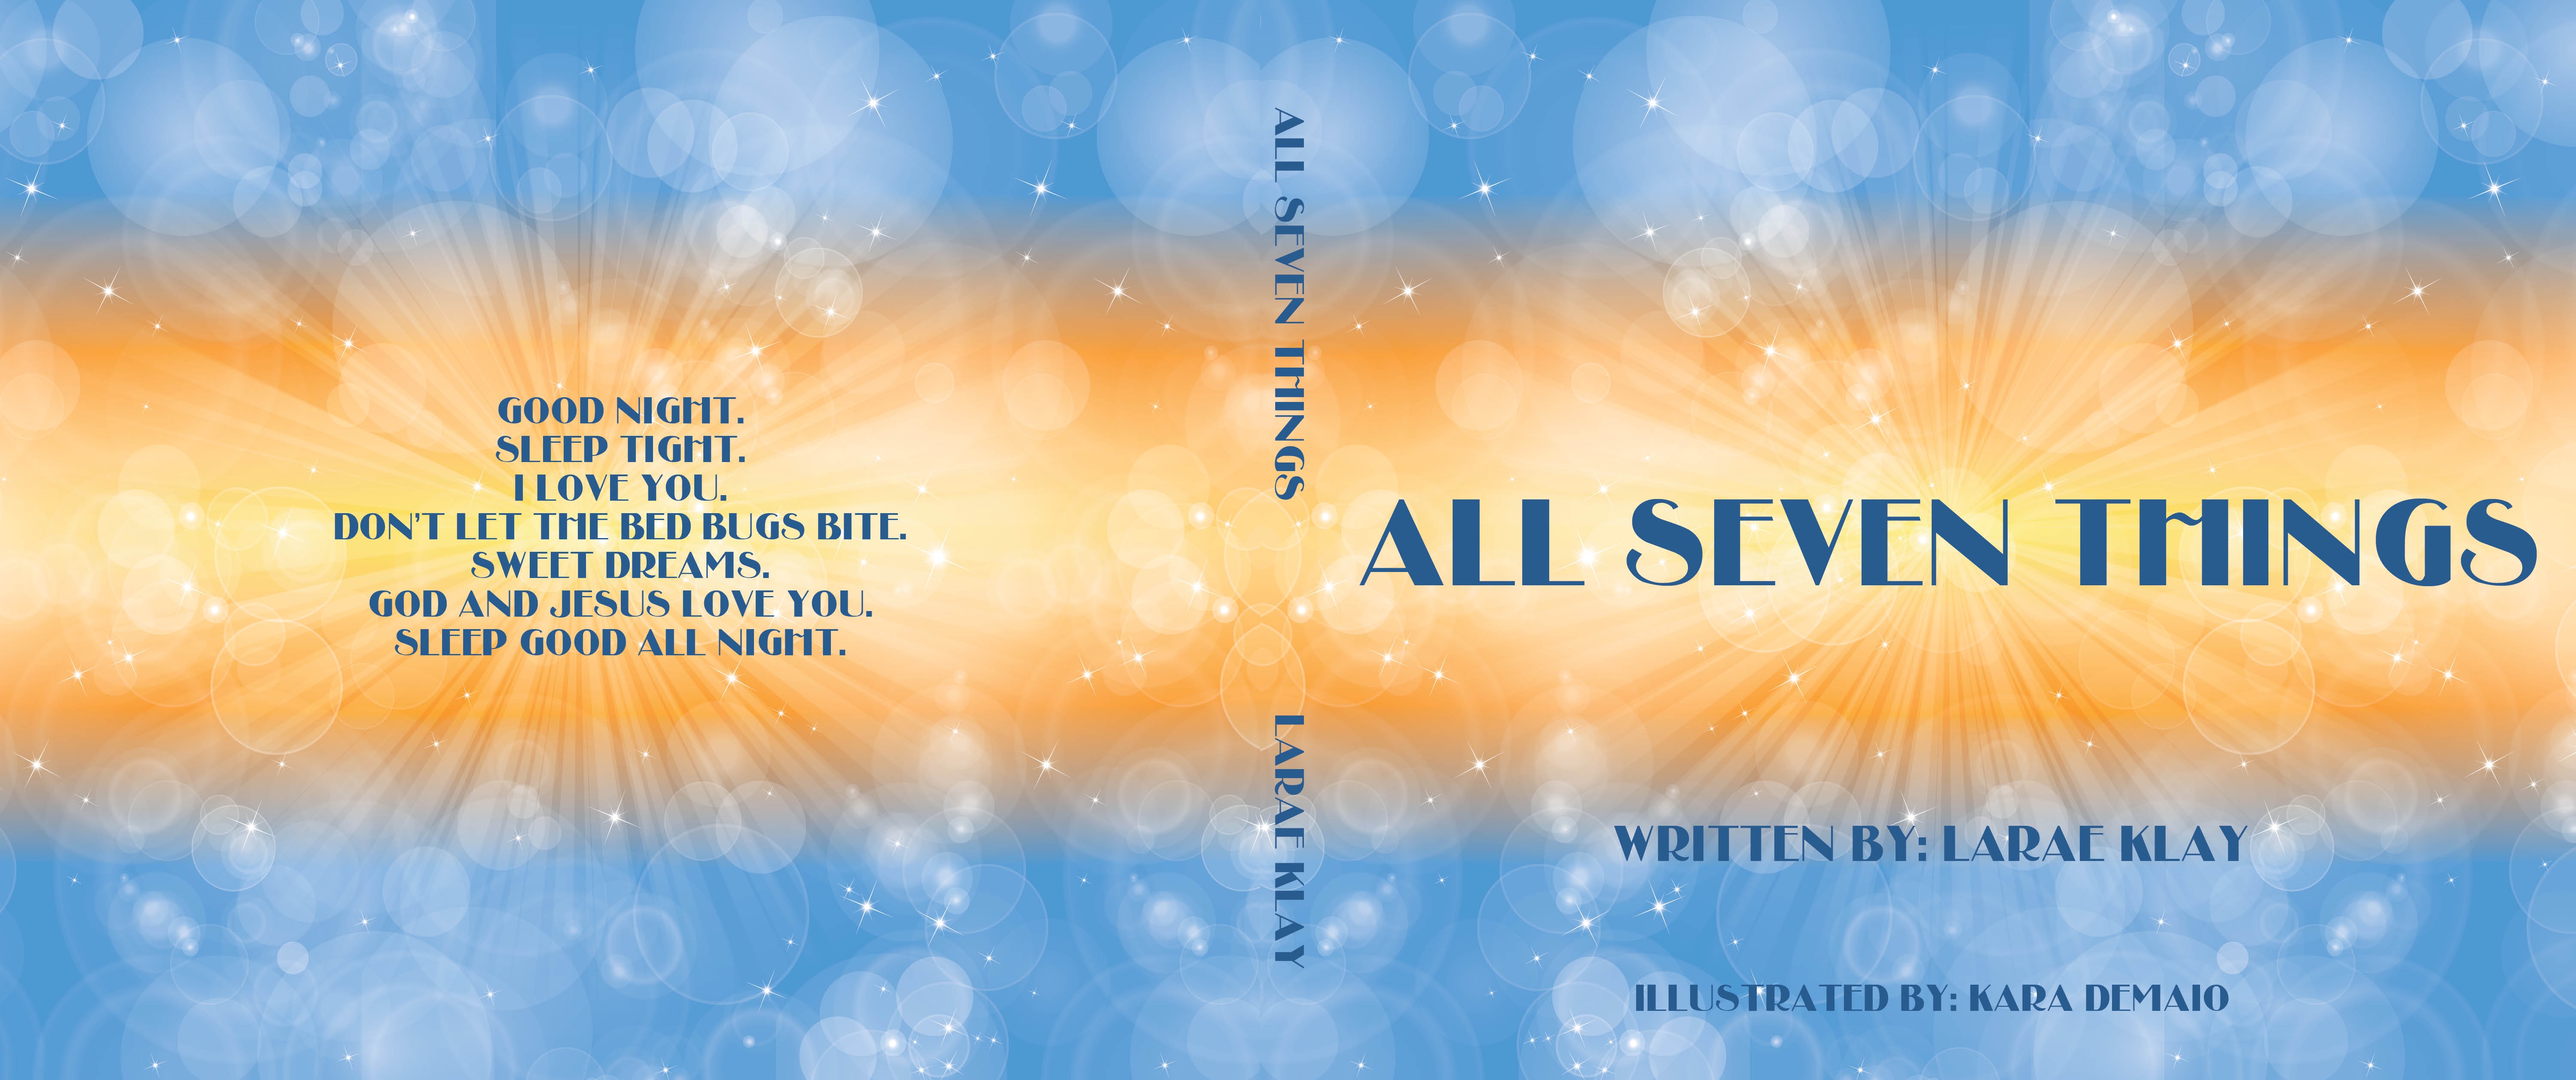 All Seven Things Cover